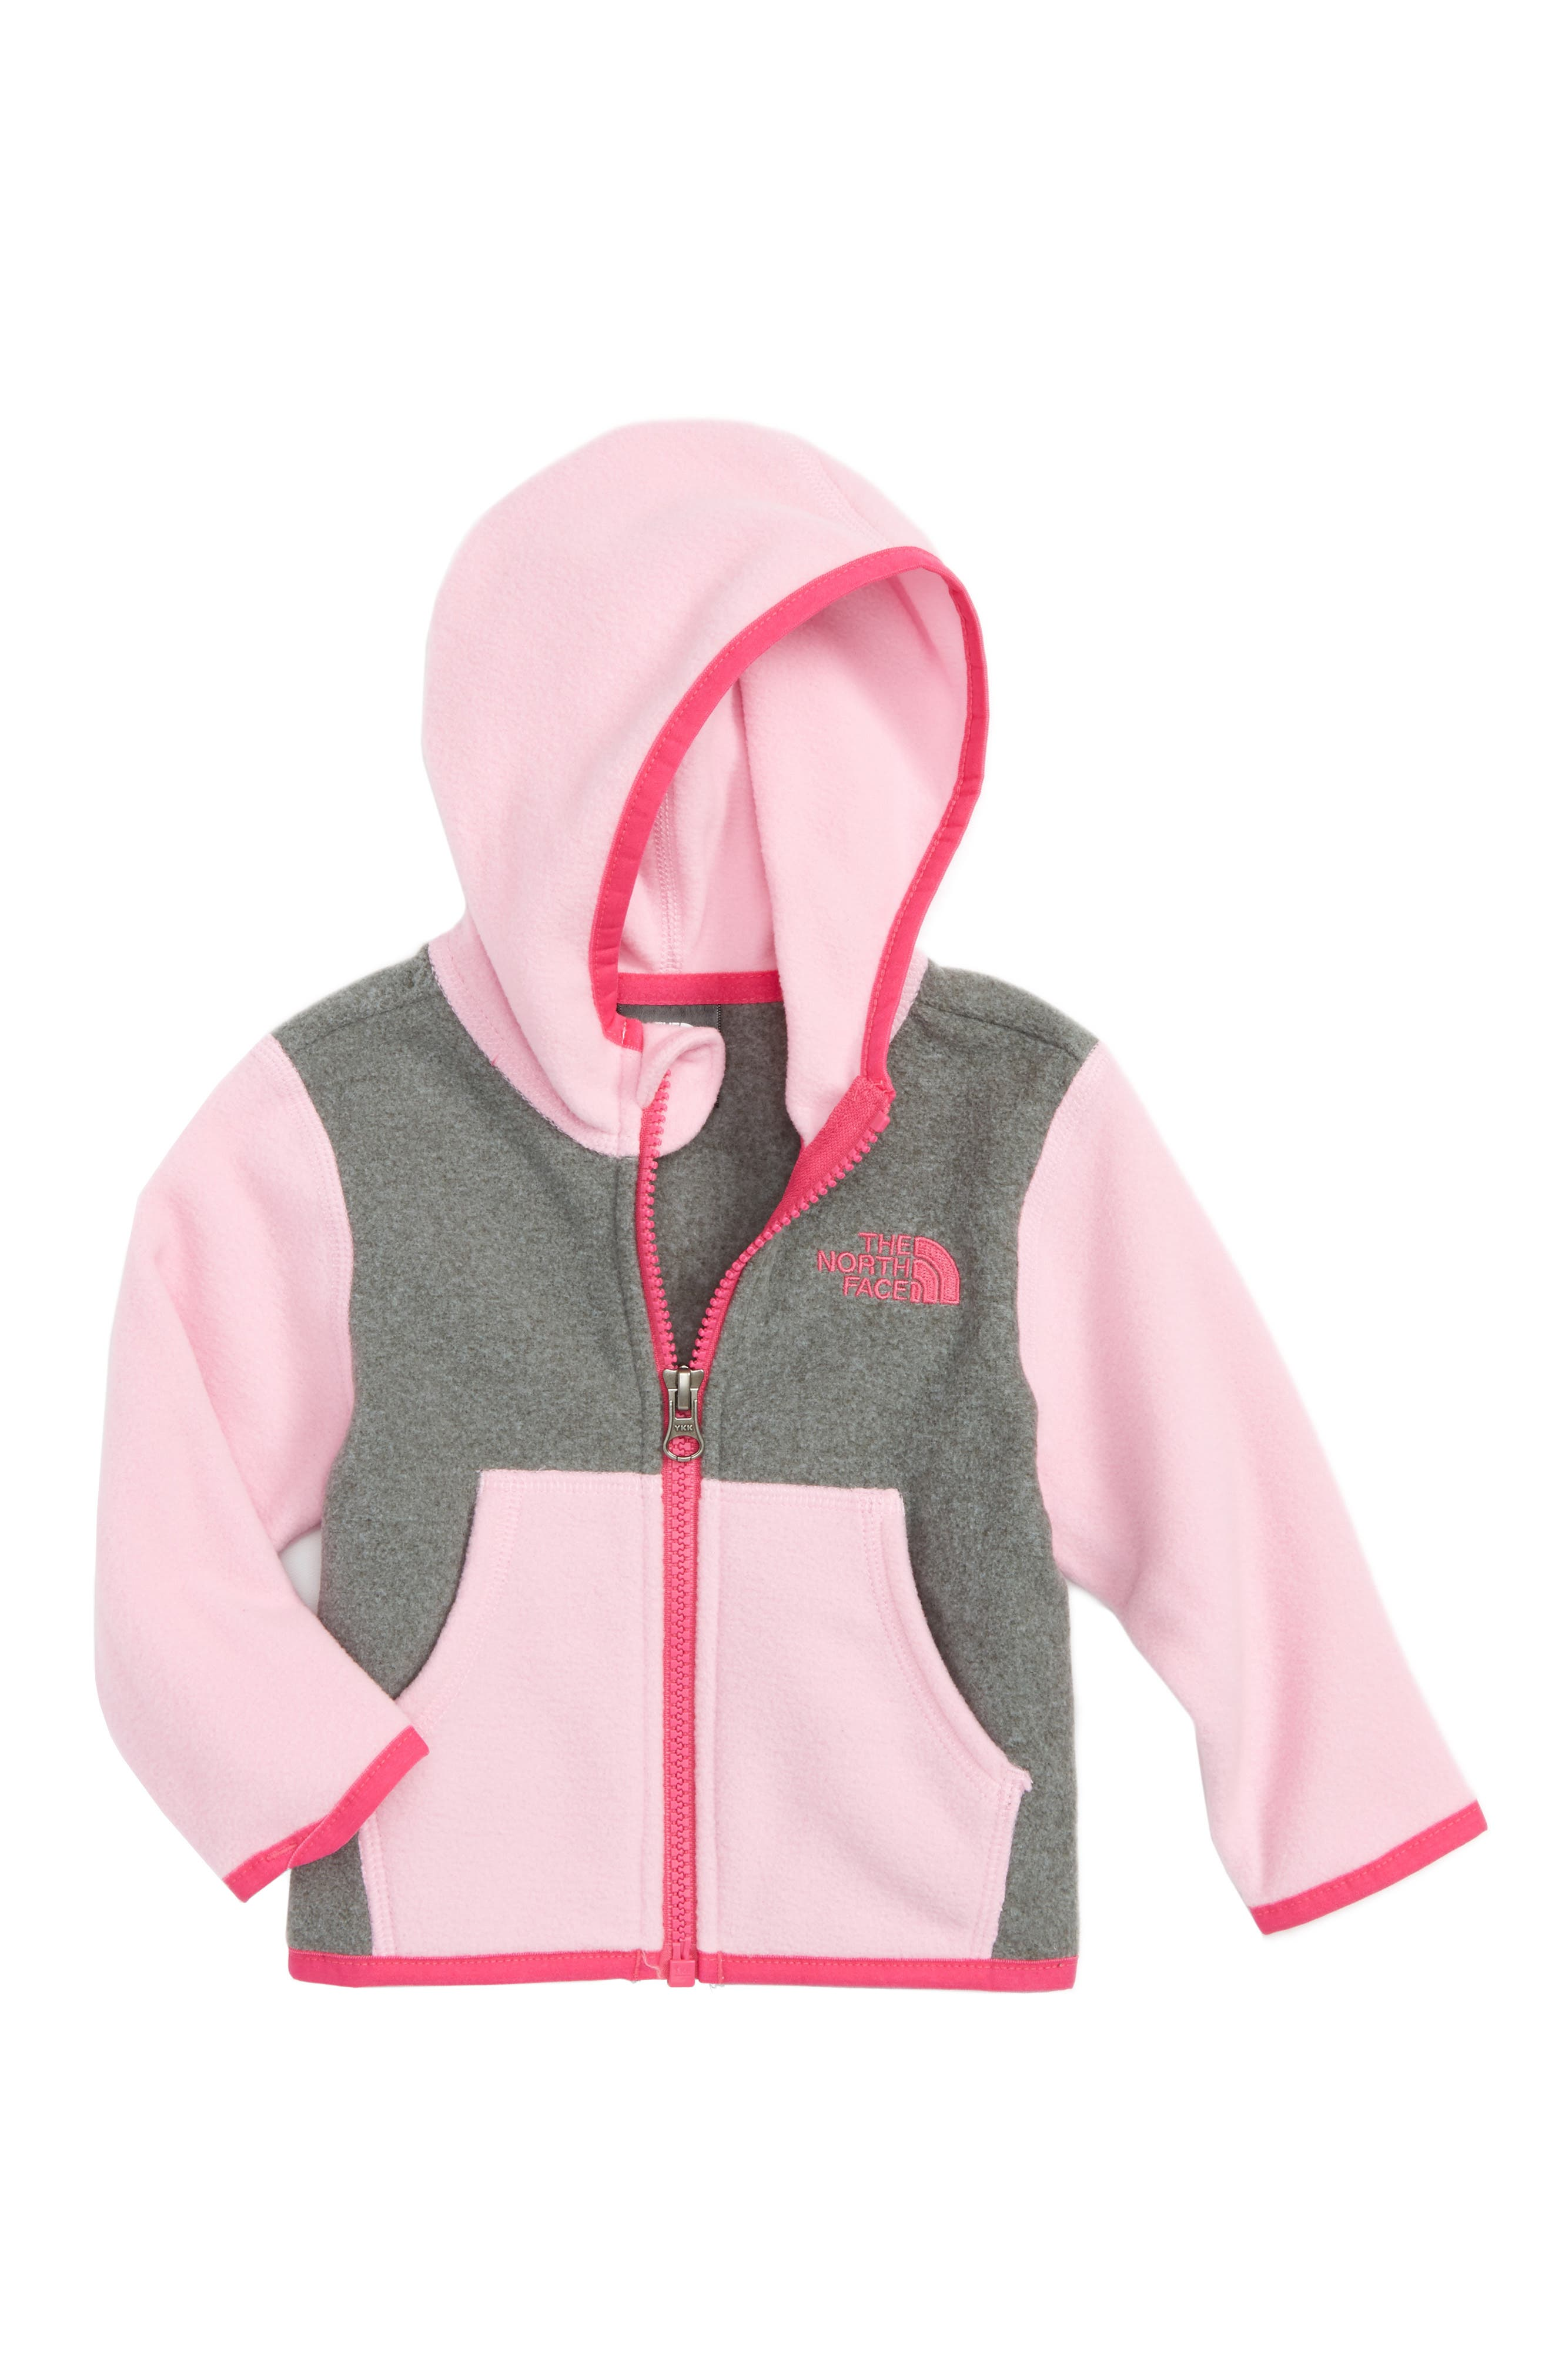 Main Image - The North Face 'Glacier' Zip Hoodie (Baby Girls)